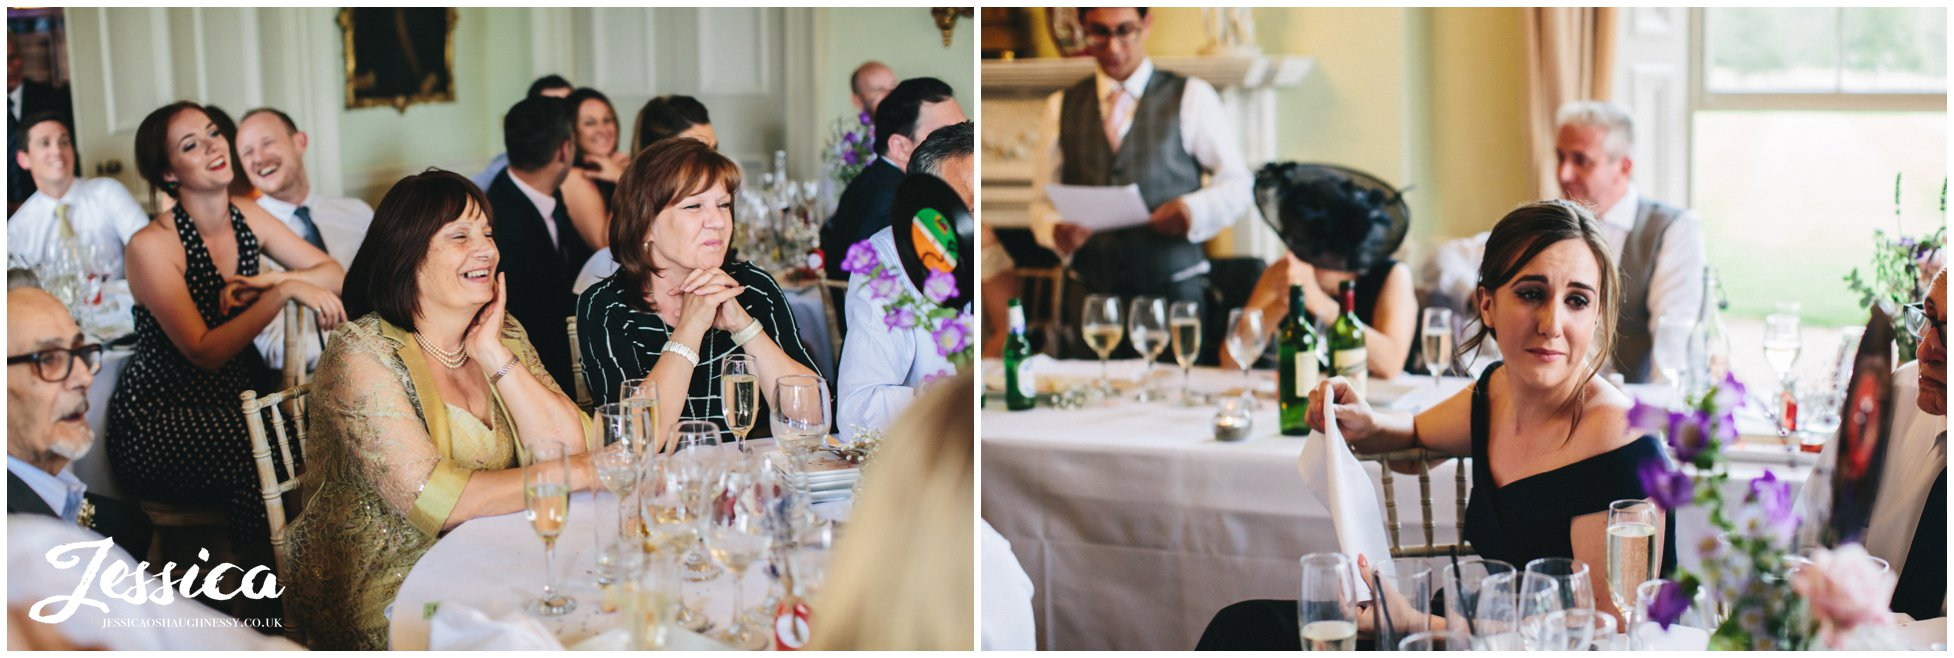 guests get emotional during speeches